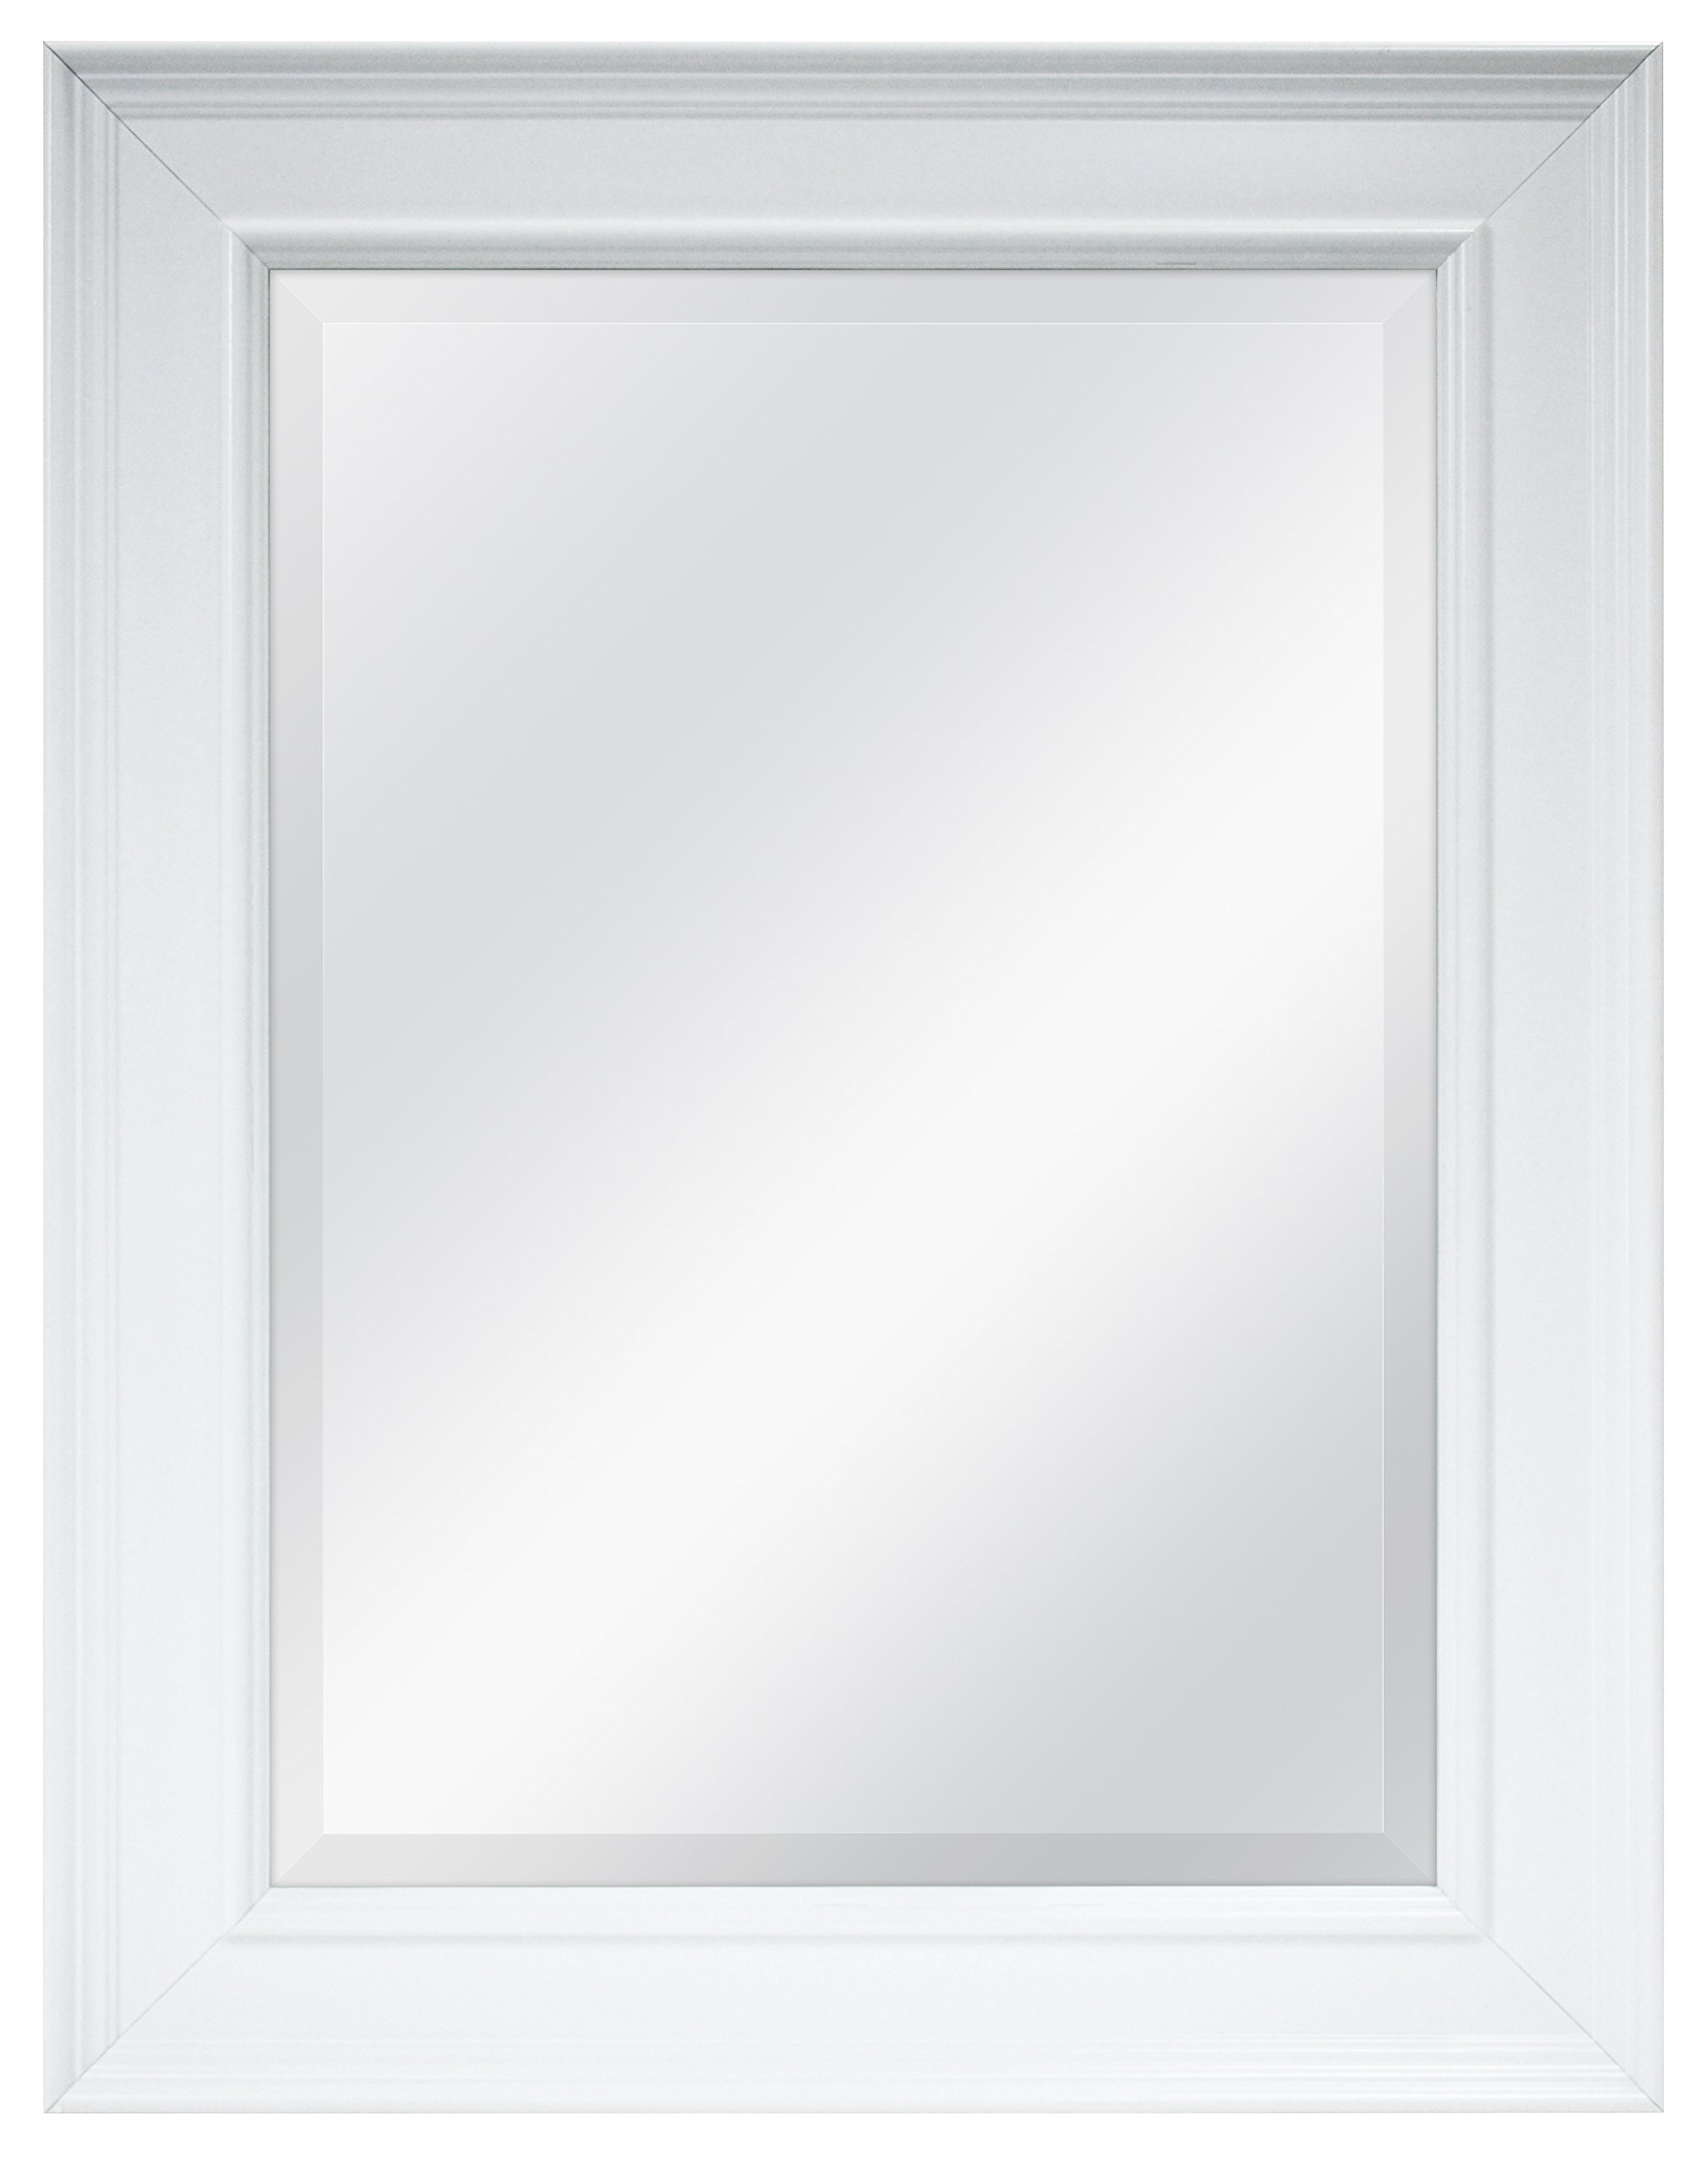 MCS 15.5x21.5 Inch Wall Mirror, 21.5x27.5 Inch Overall Size, White (20450) by MCS